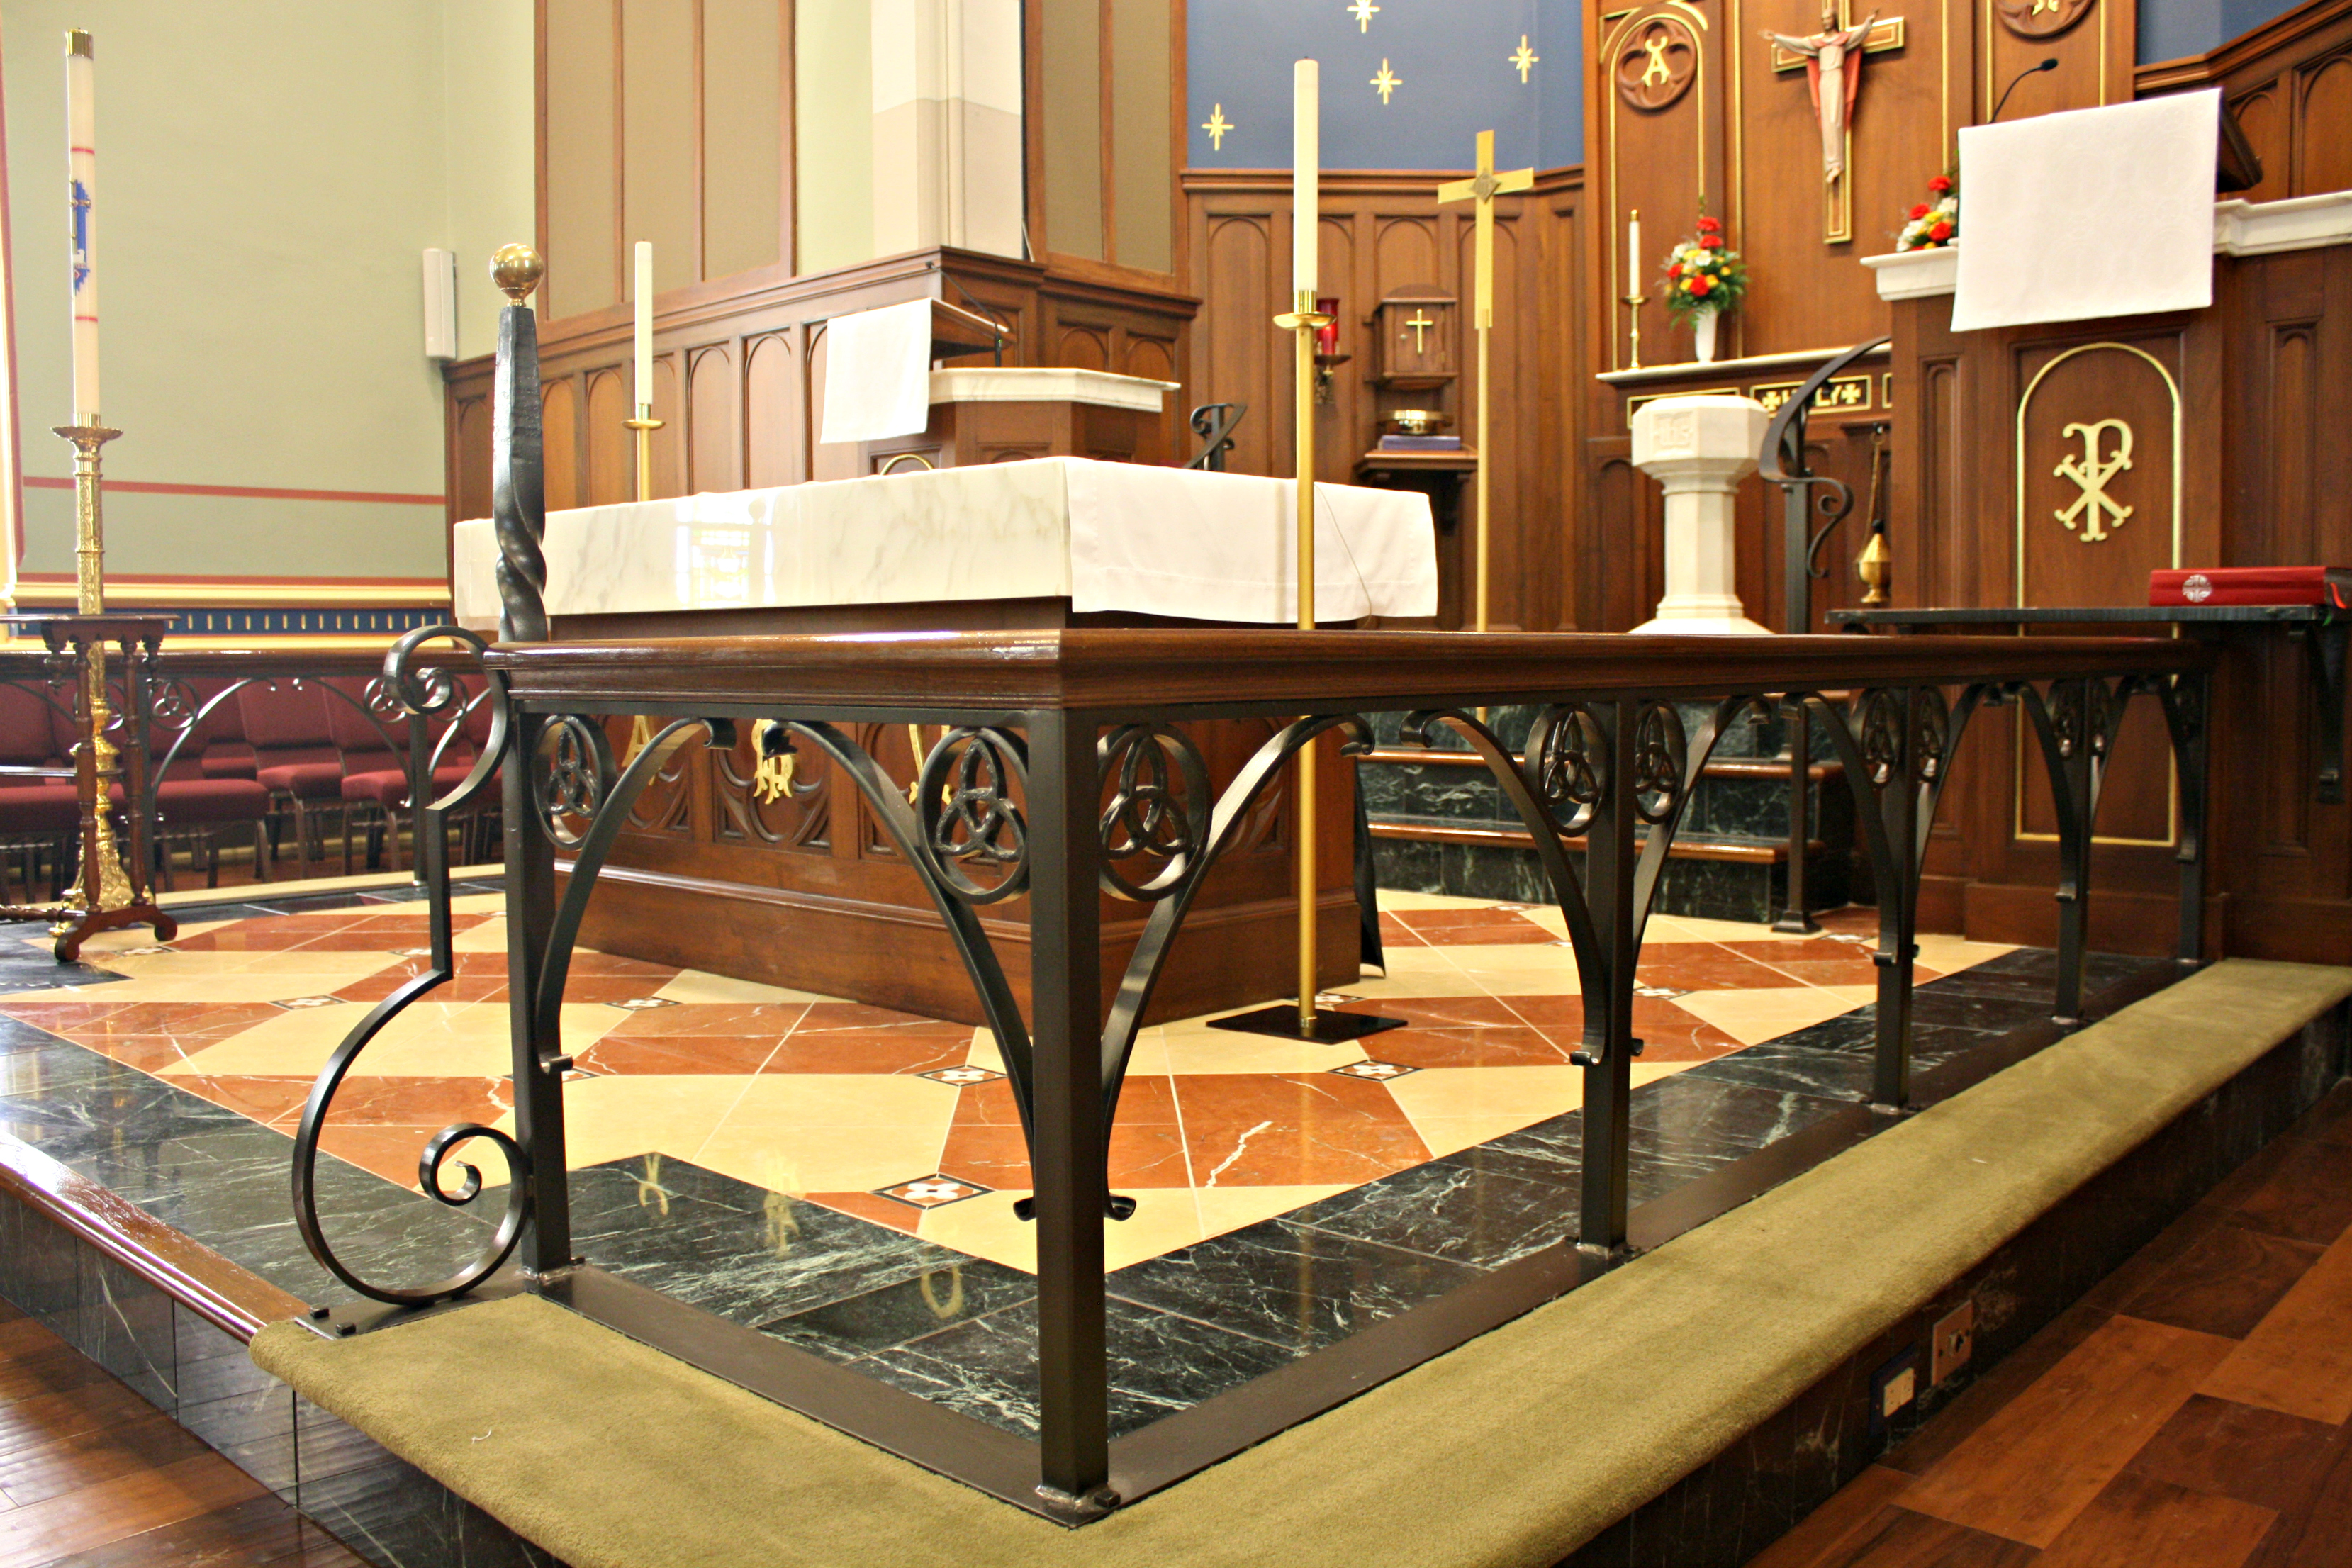 Interior Church Railings